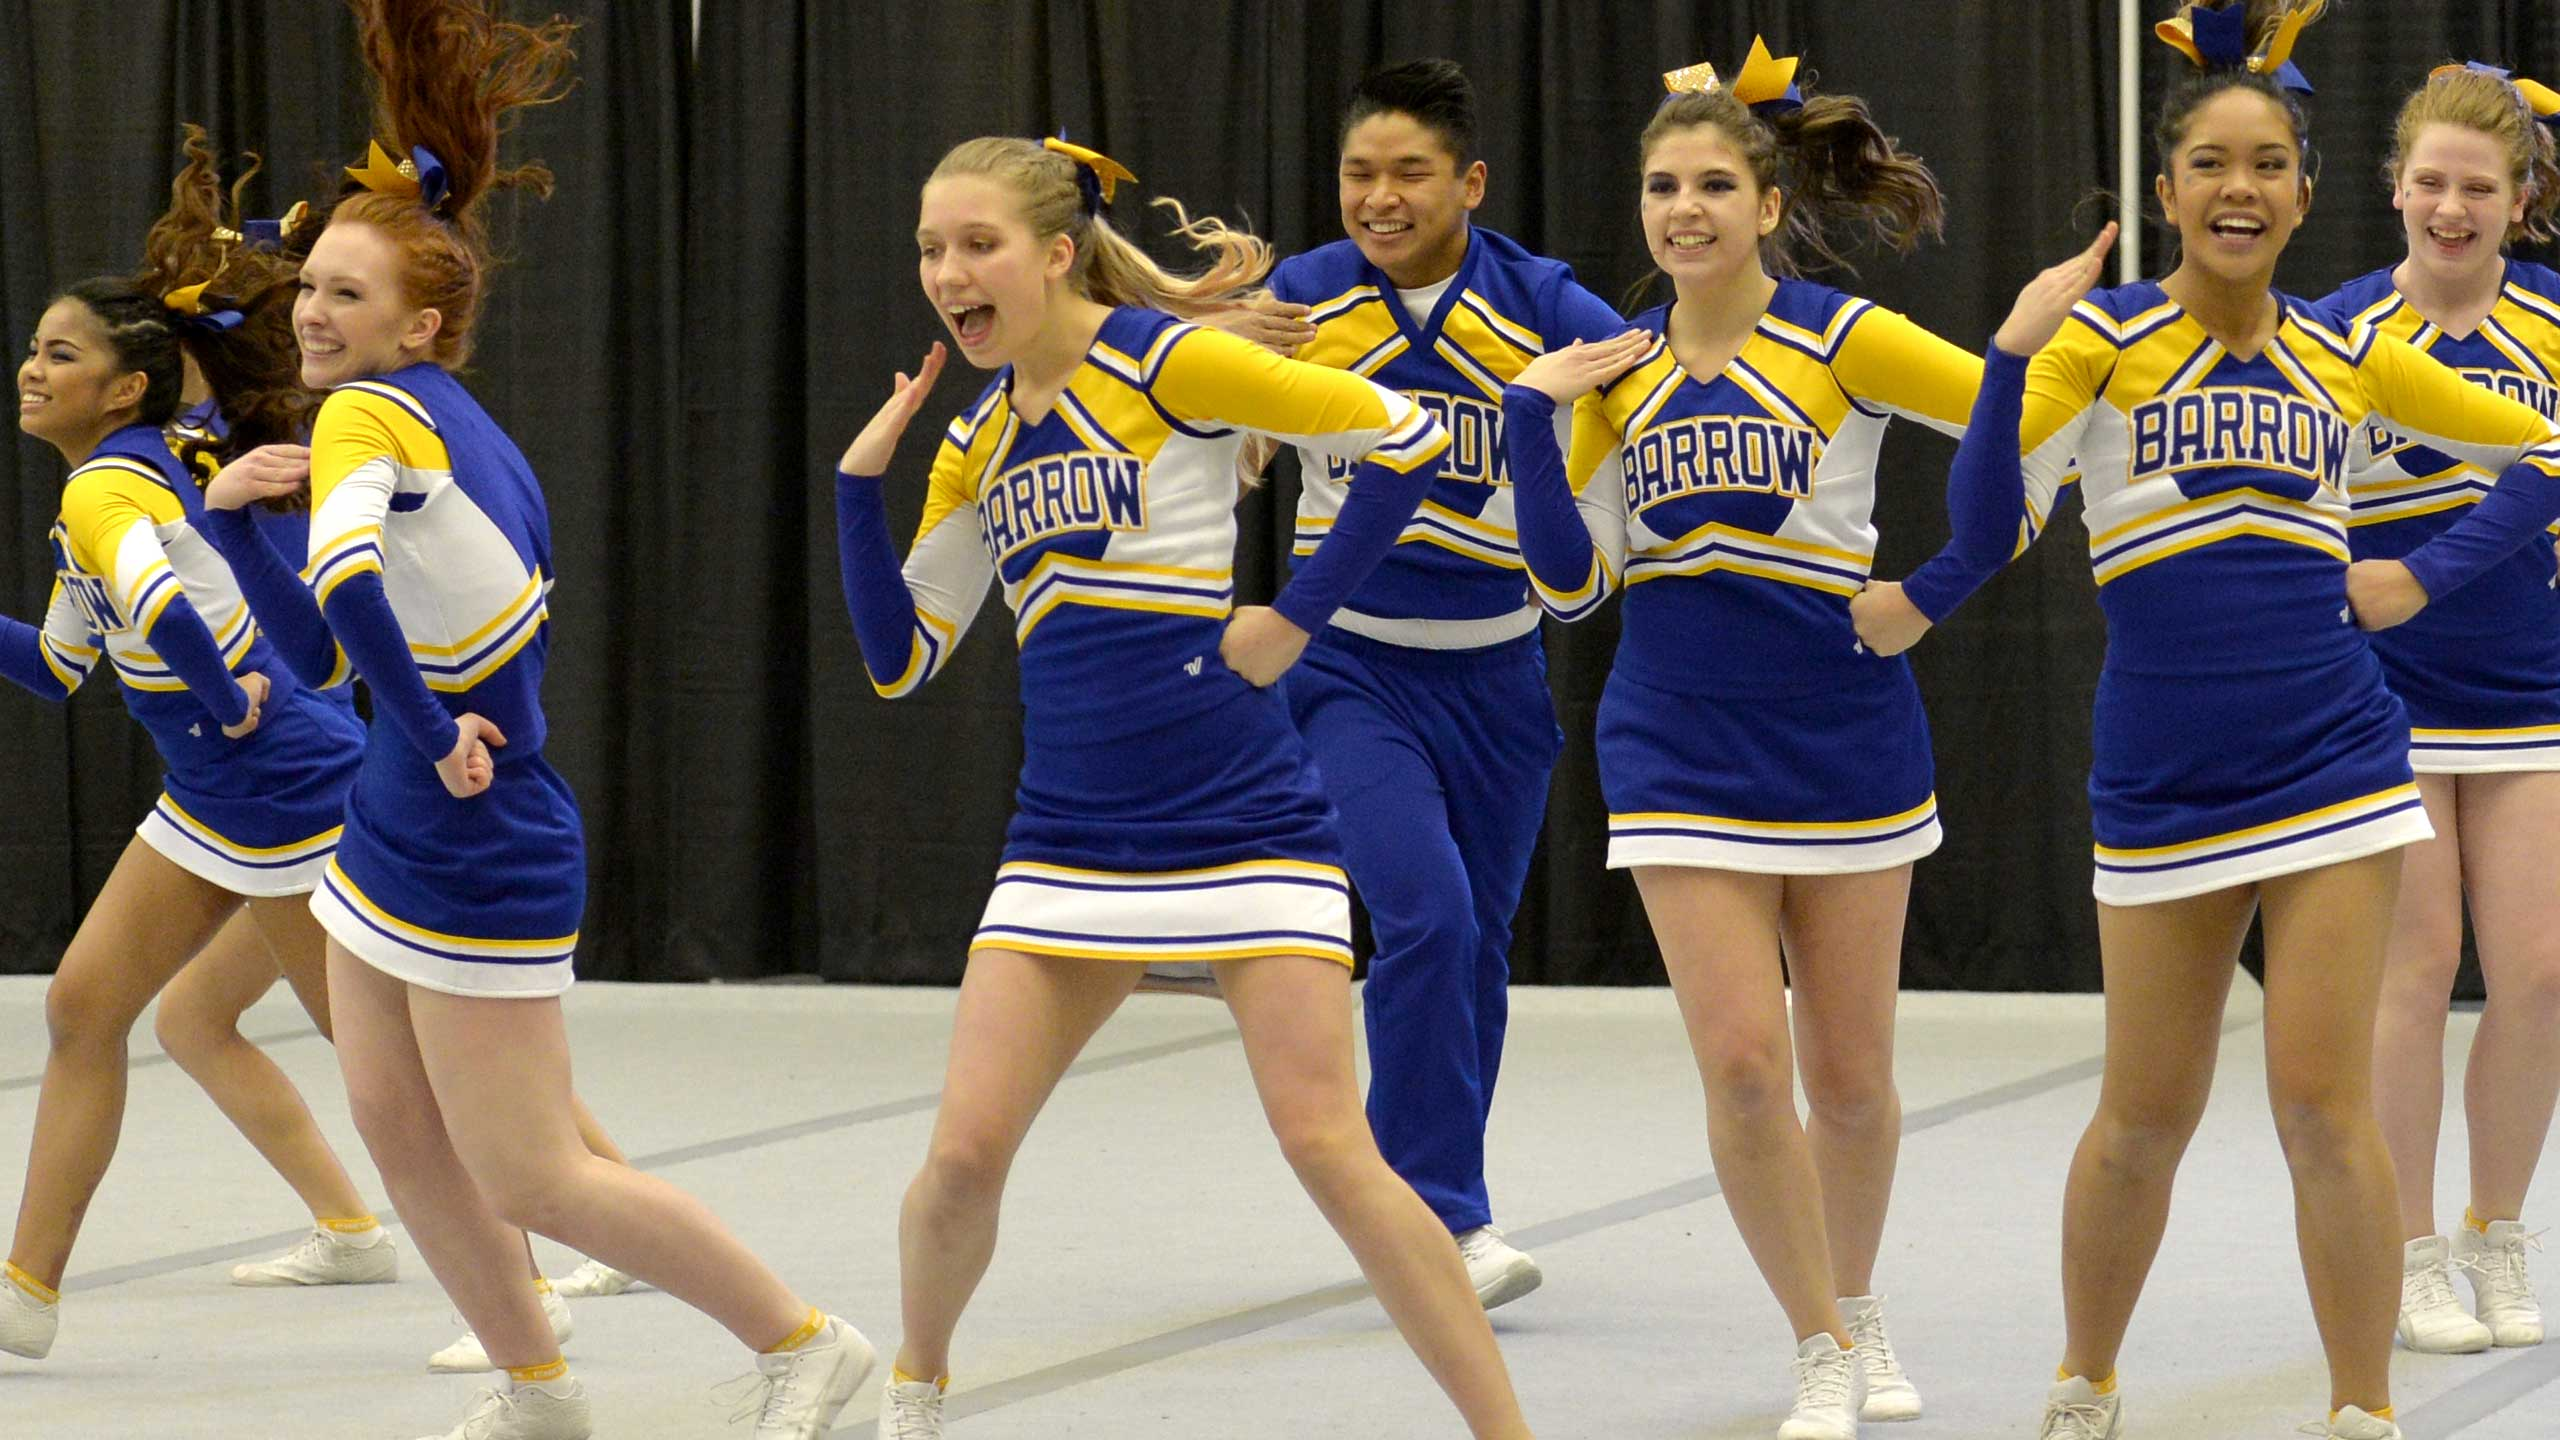 cheer alaska school activities association